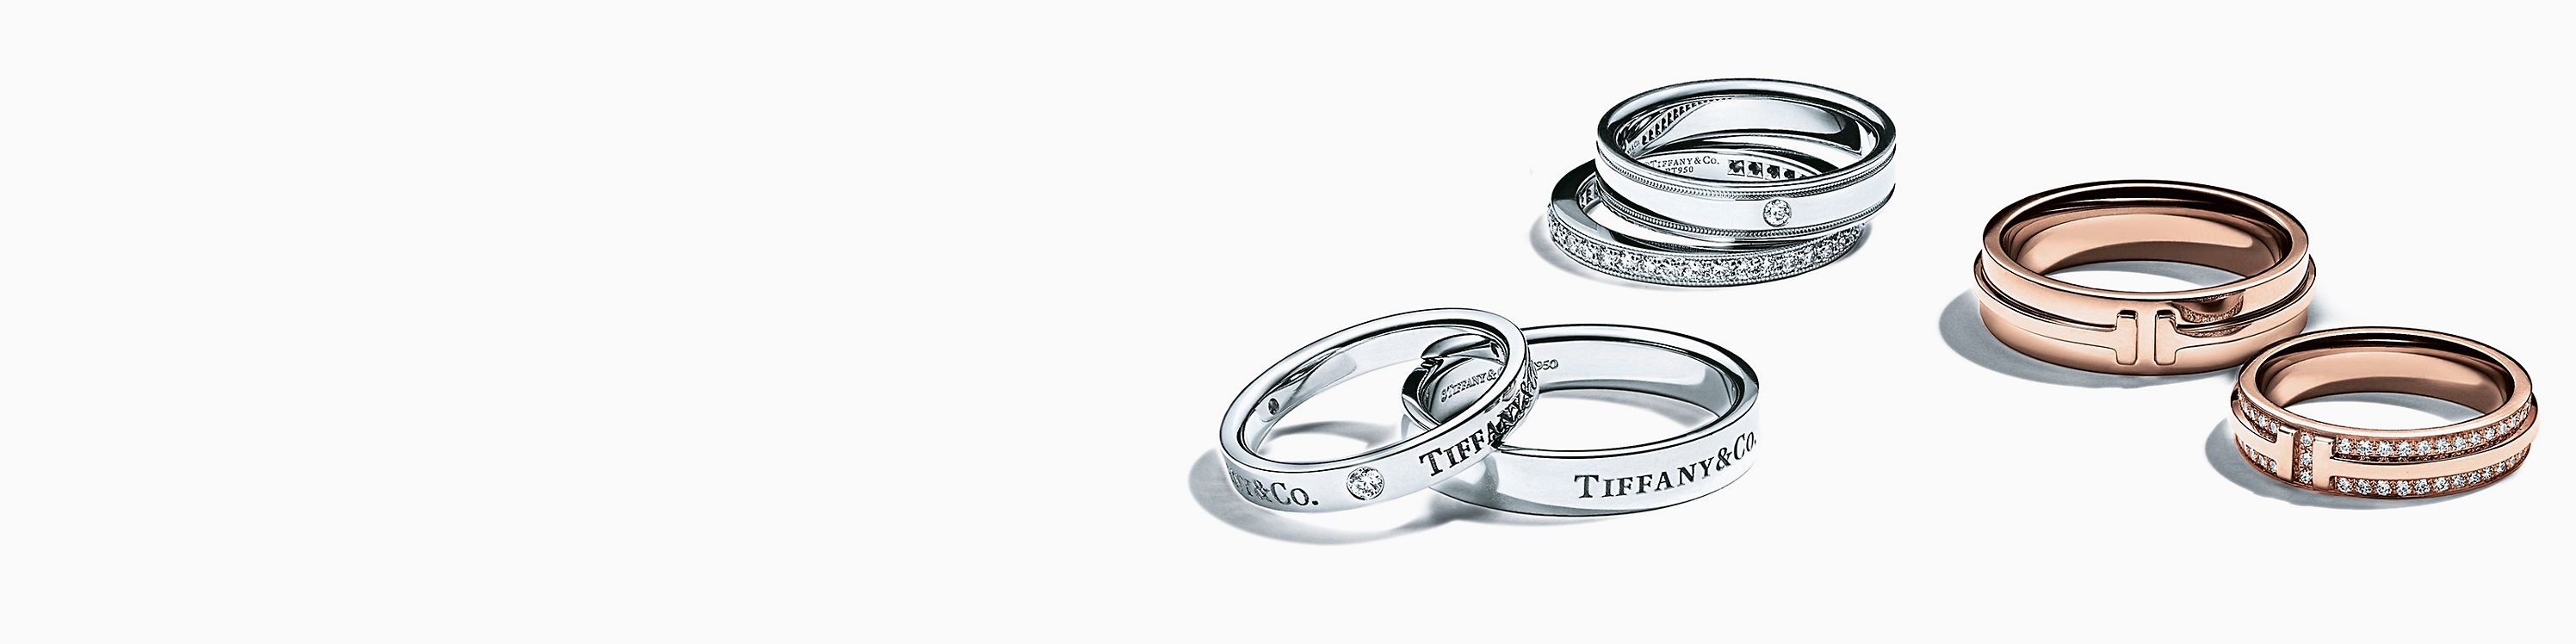 Browse Tiffany & Co. Wedding Band Sets